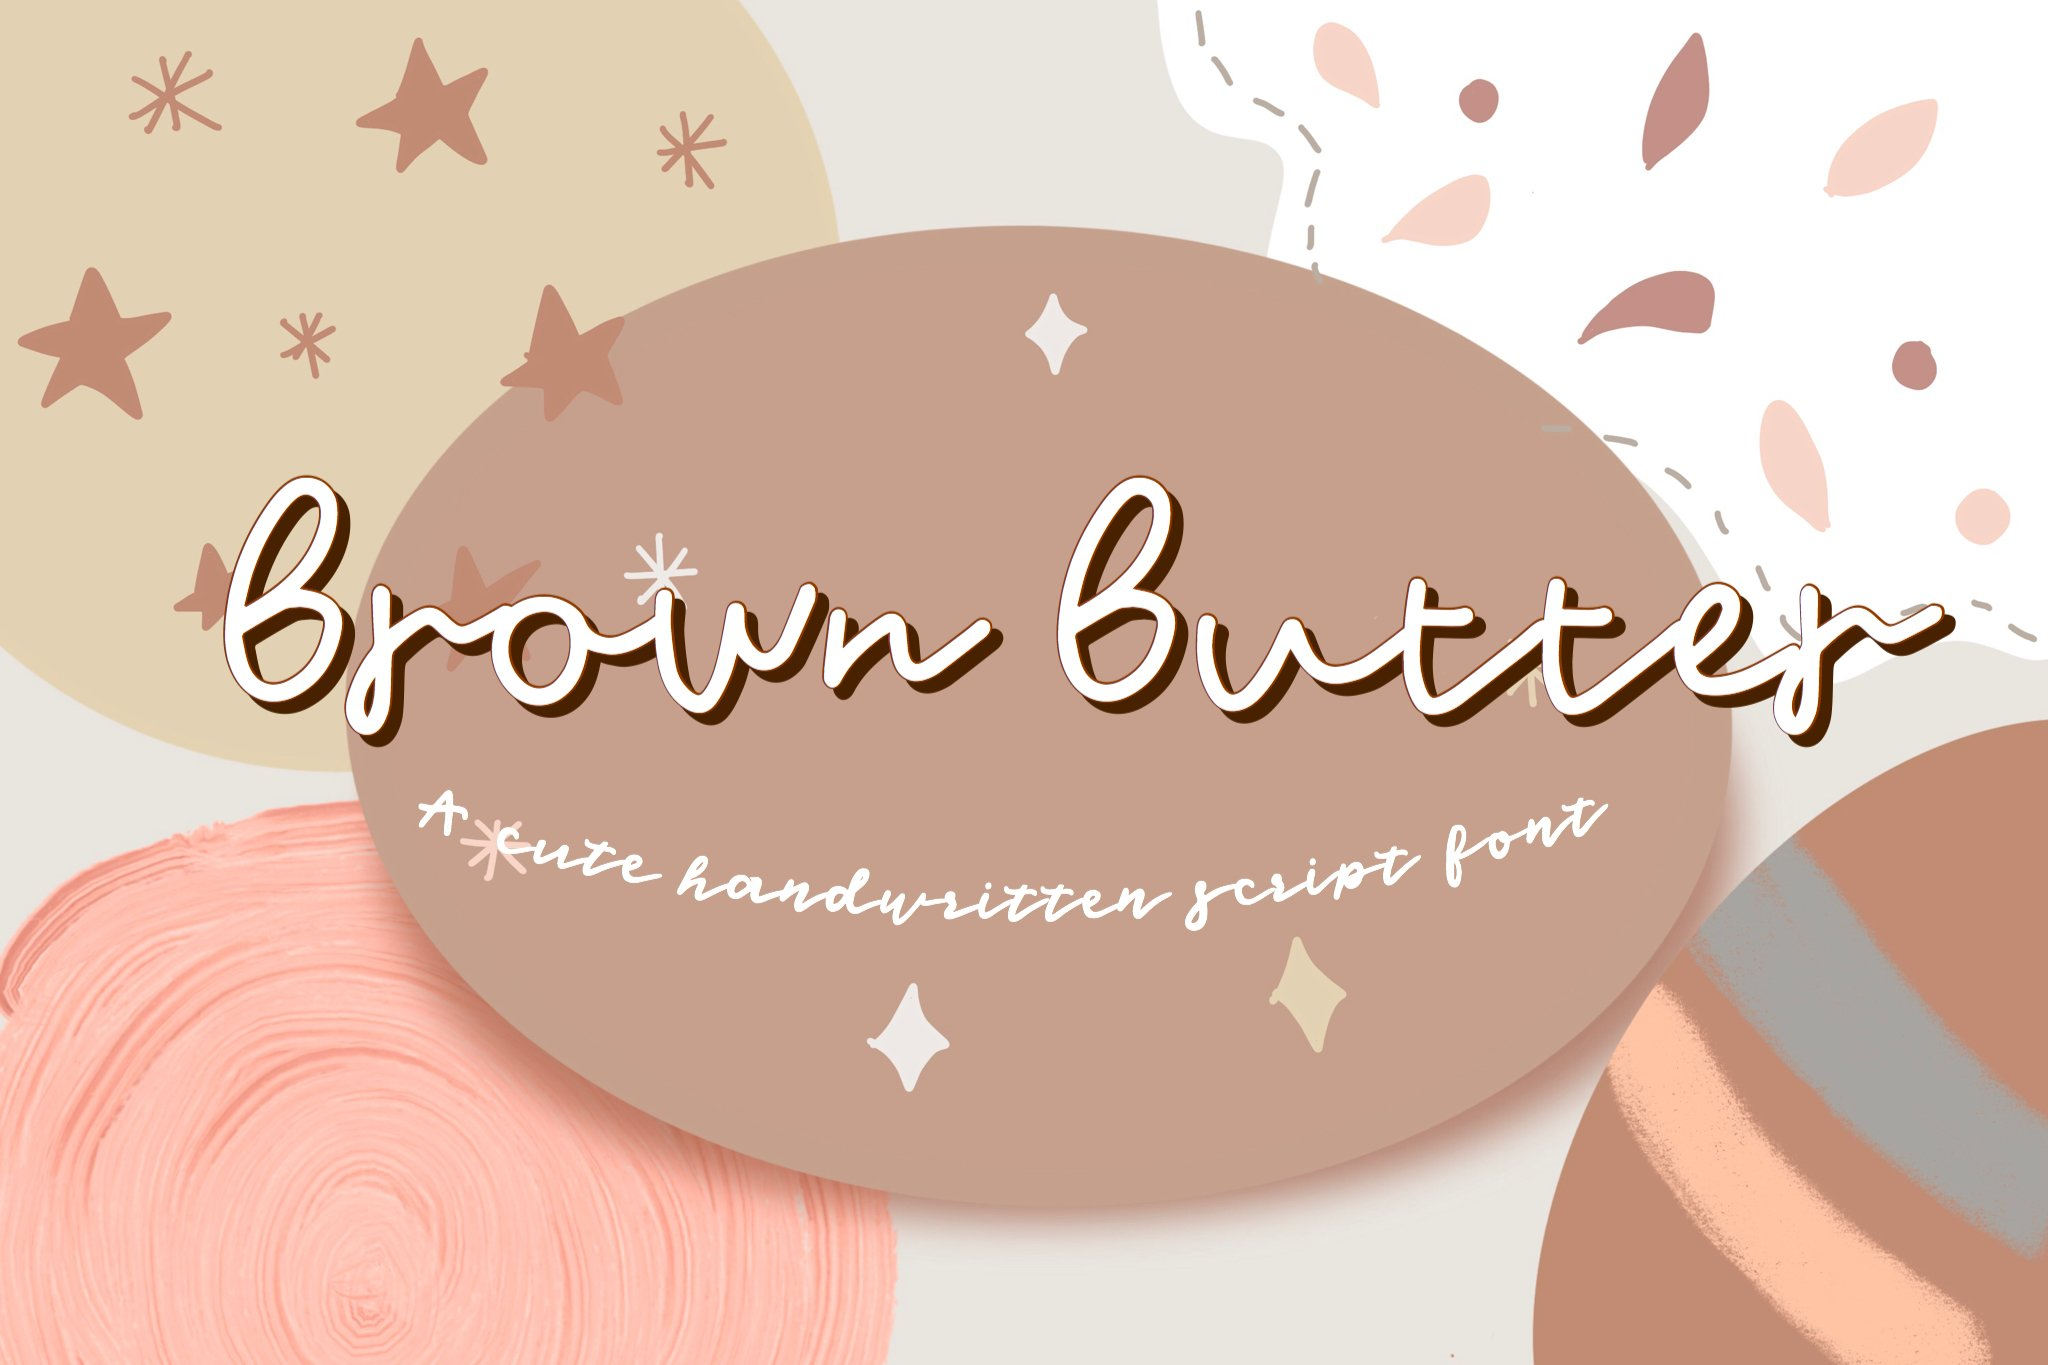 Brown Butter -Font example image 1